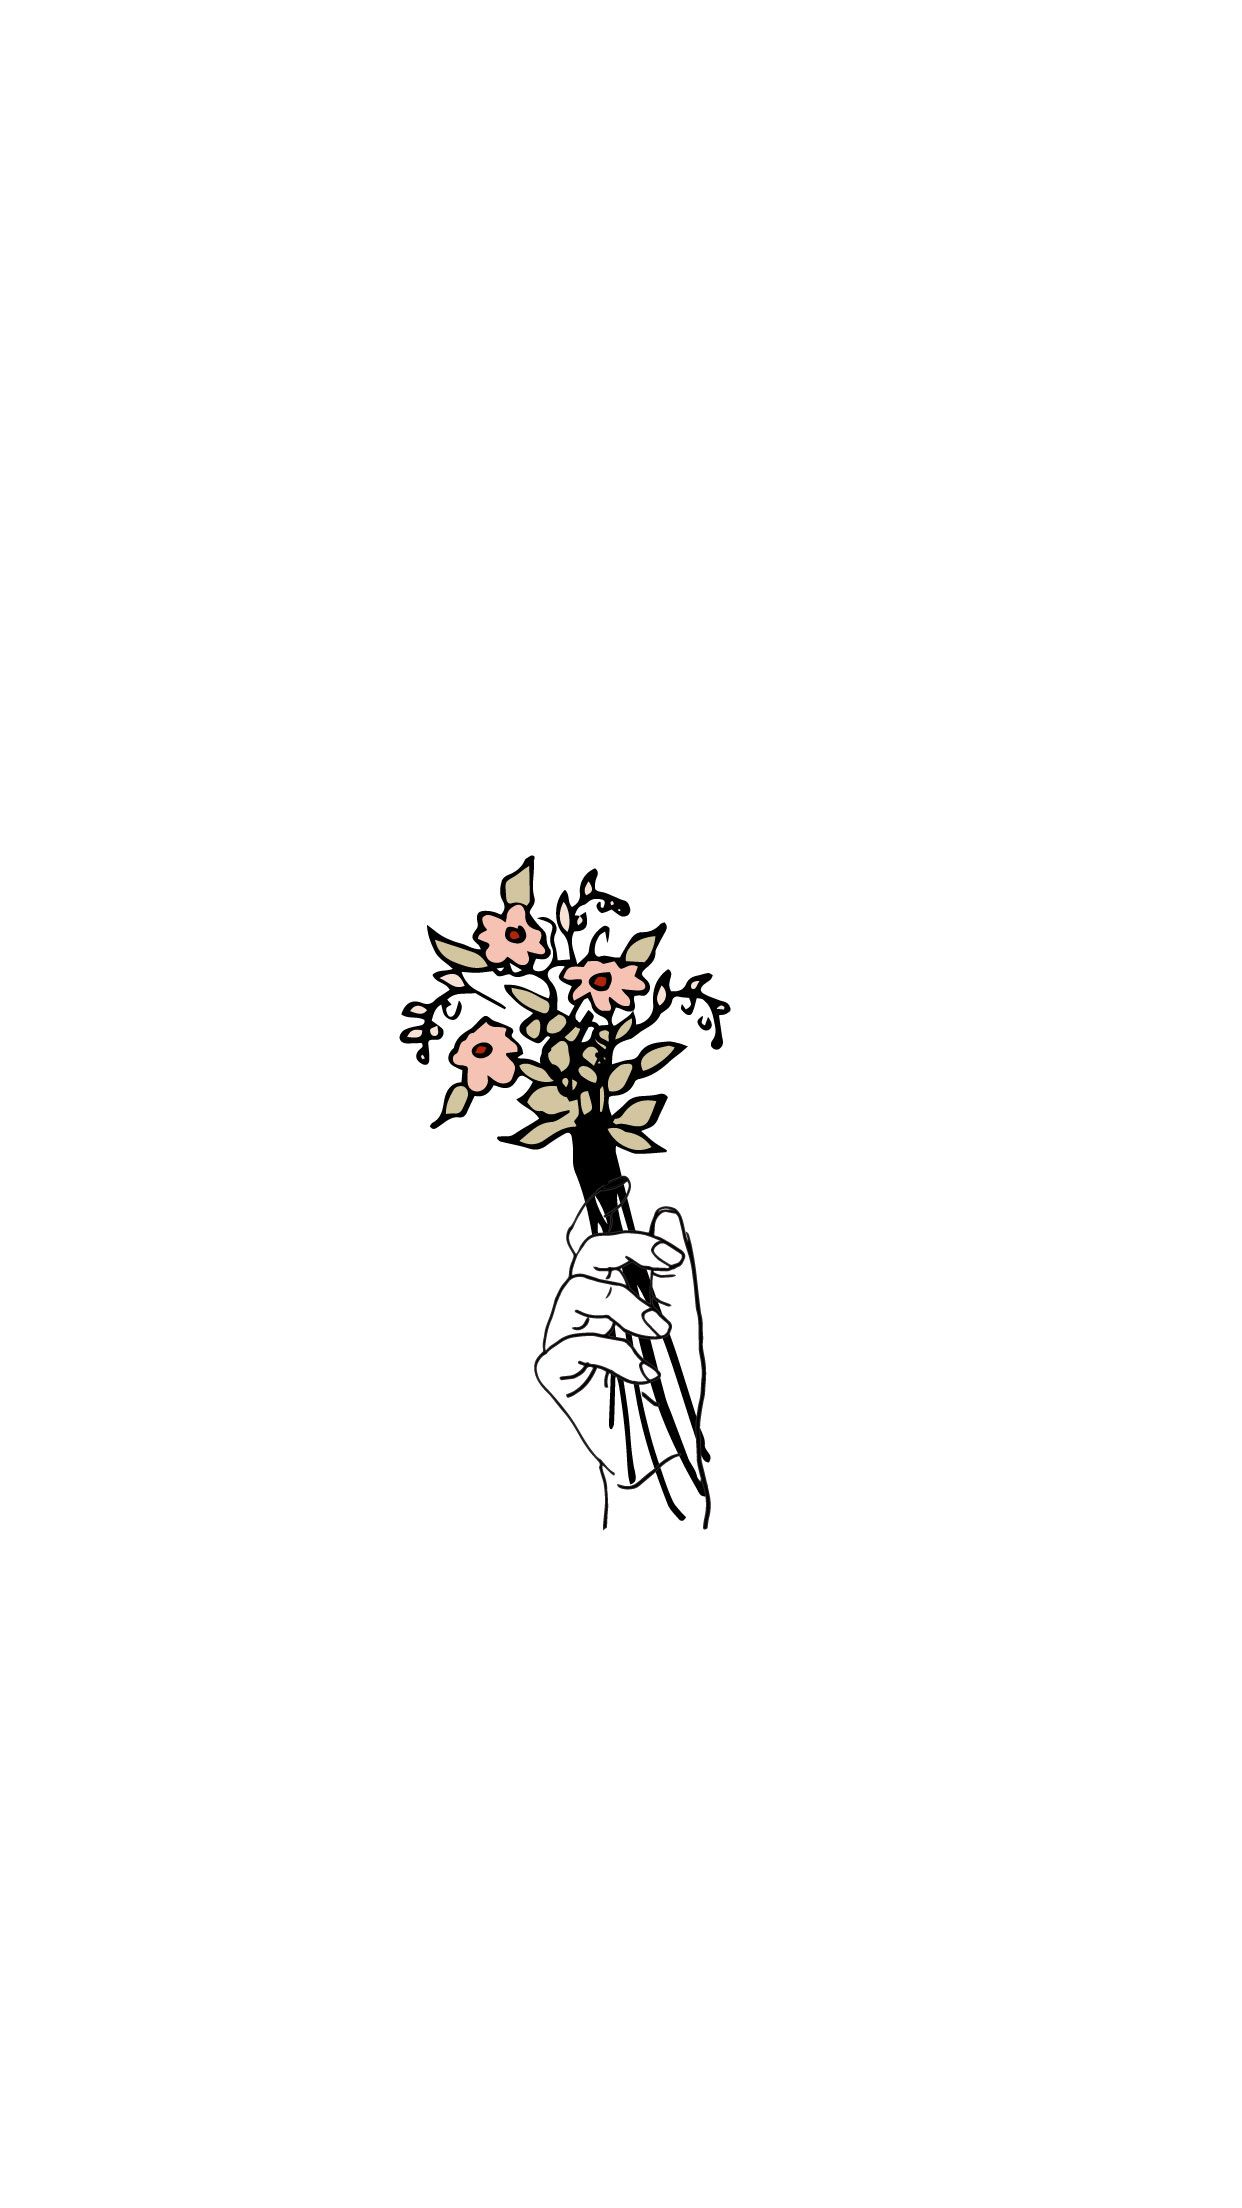 Even In The Smallest Places Can A Garden Grow Minimalist Wallpaper Tumblr Drawings Easy Aesthetic Iphone Wallpaper